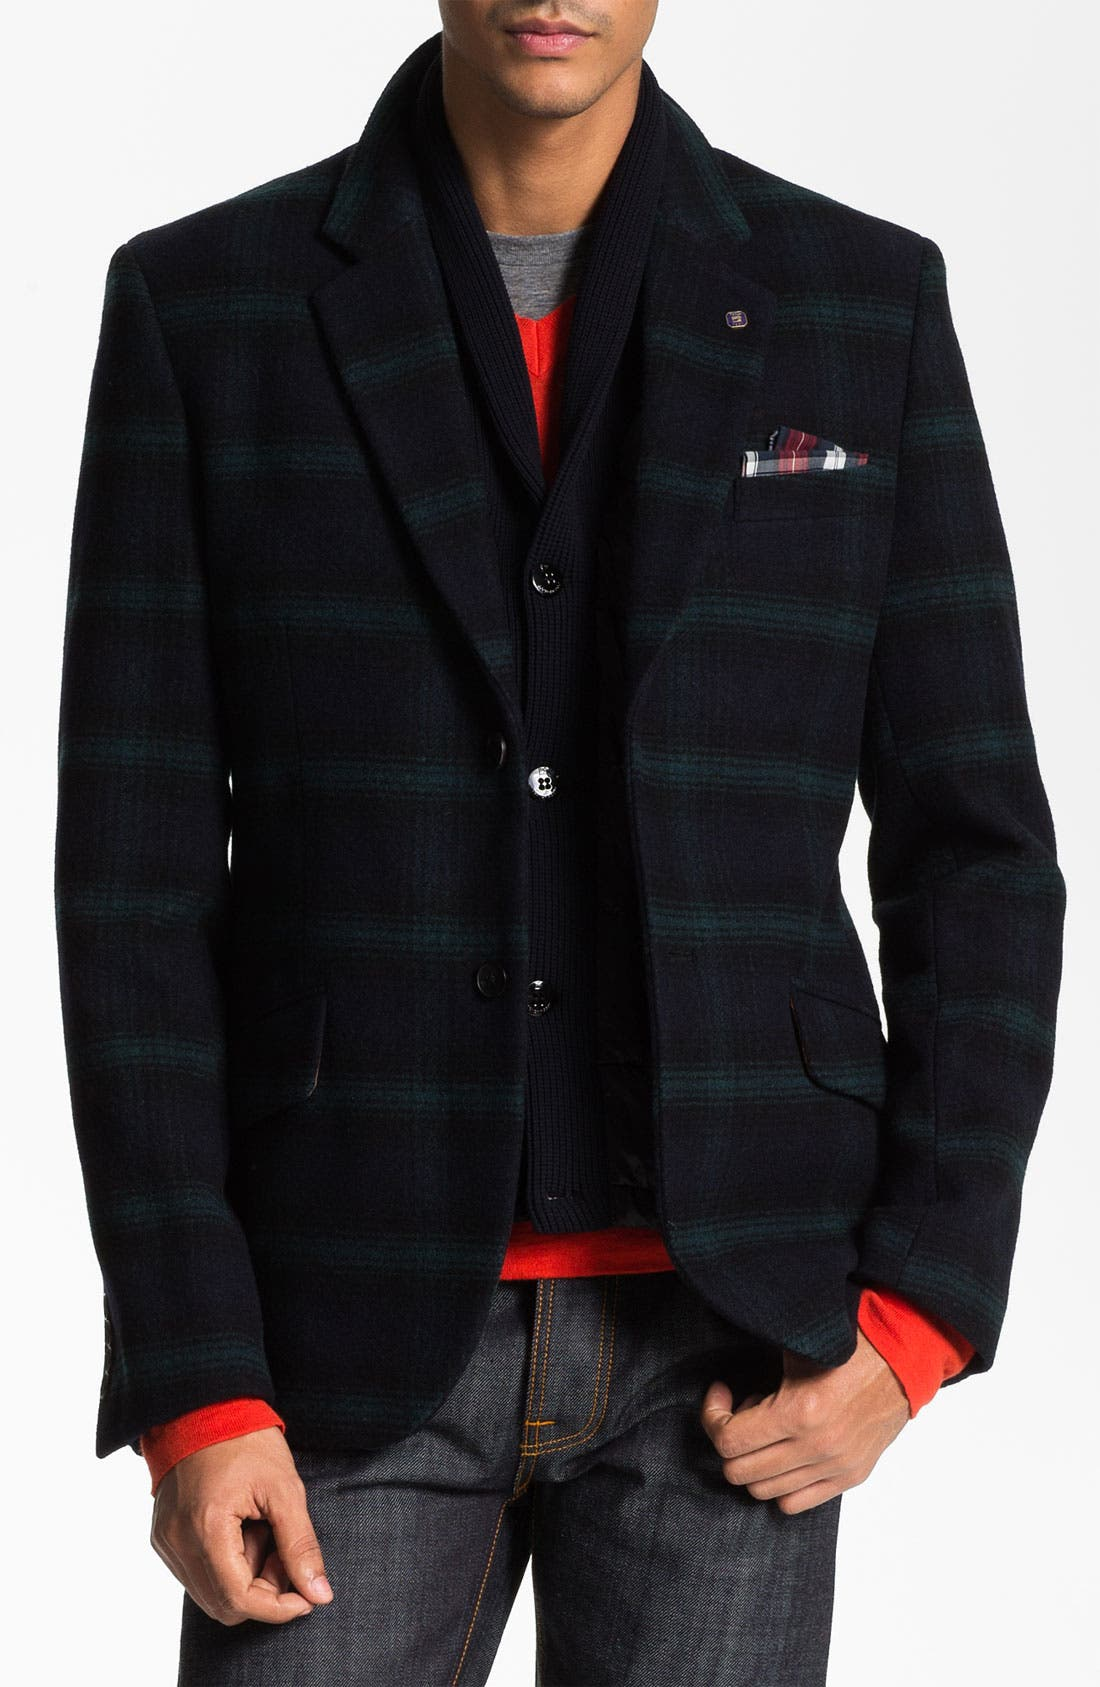 Alternate Image 1 Selected - Scotch & Soda Wool Blend Blazer with Quilted Liner Vest